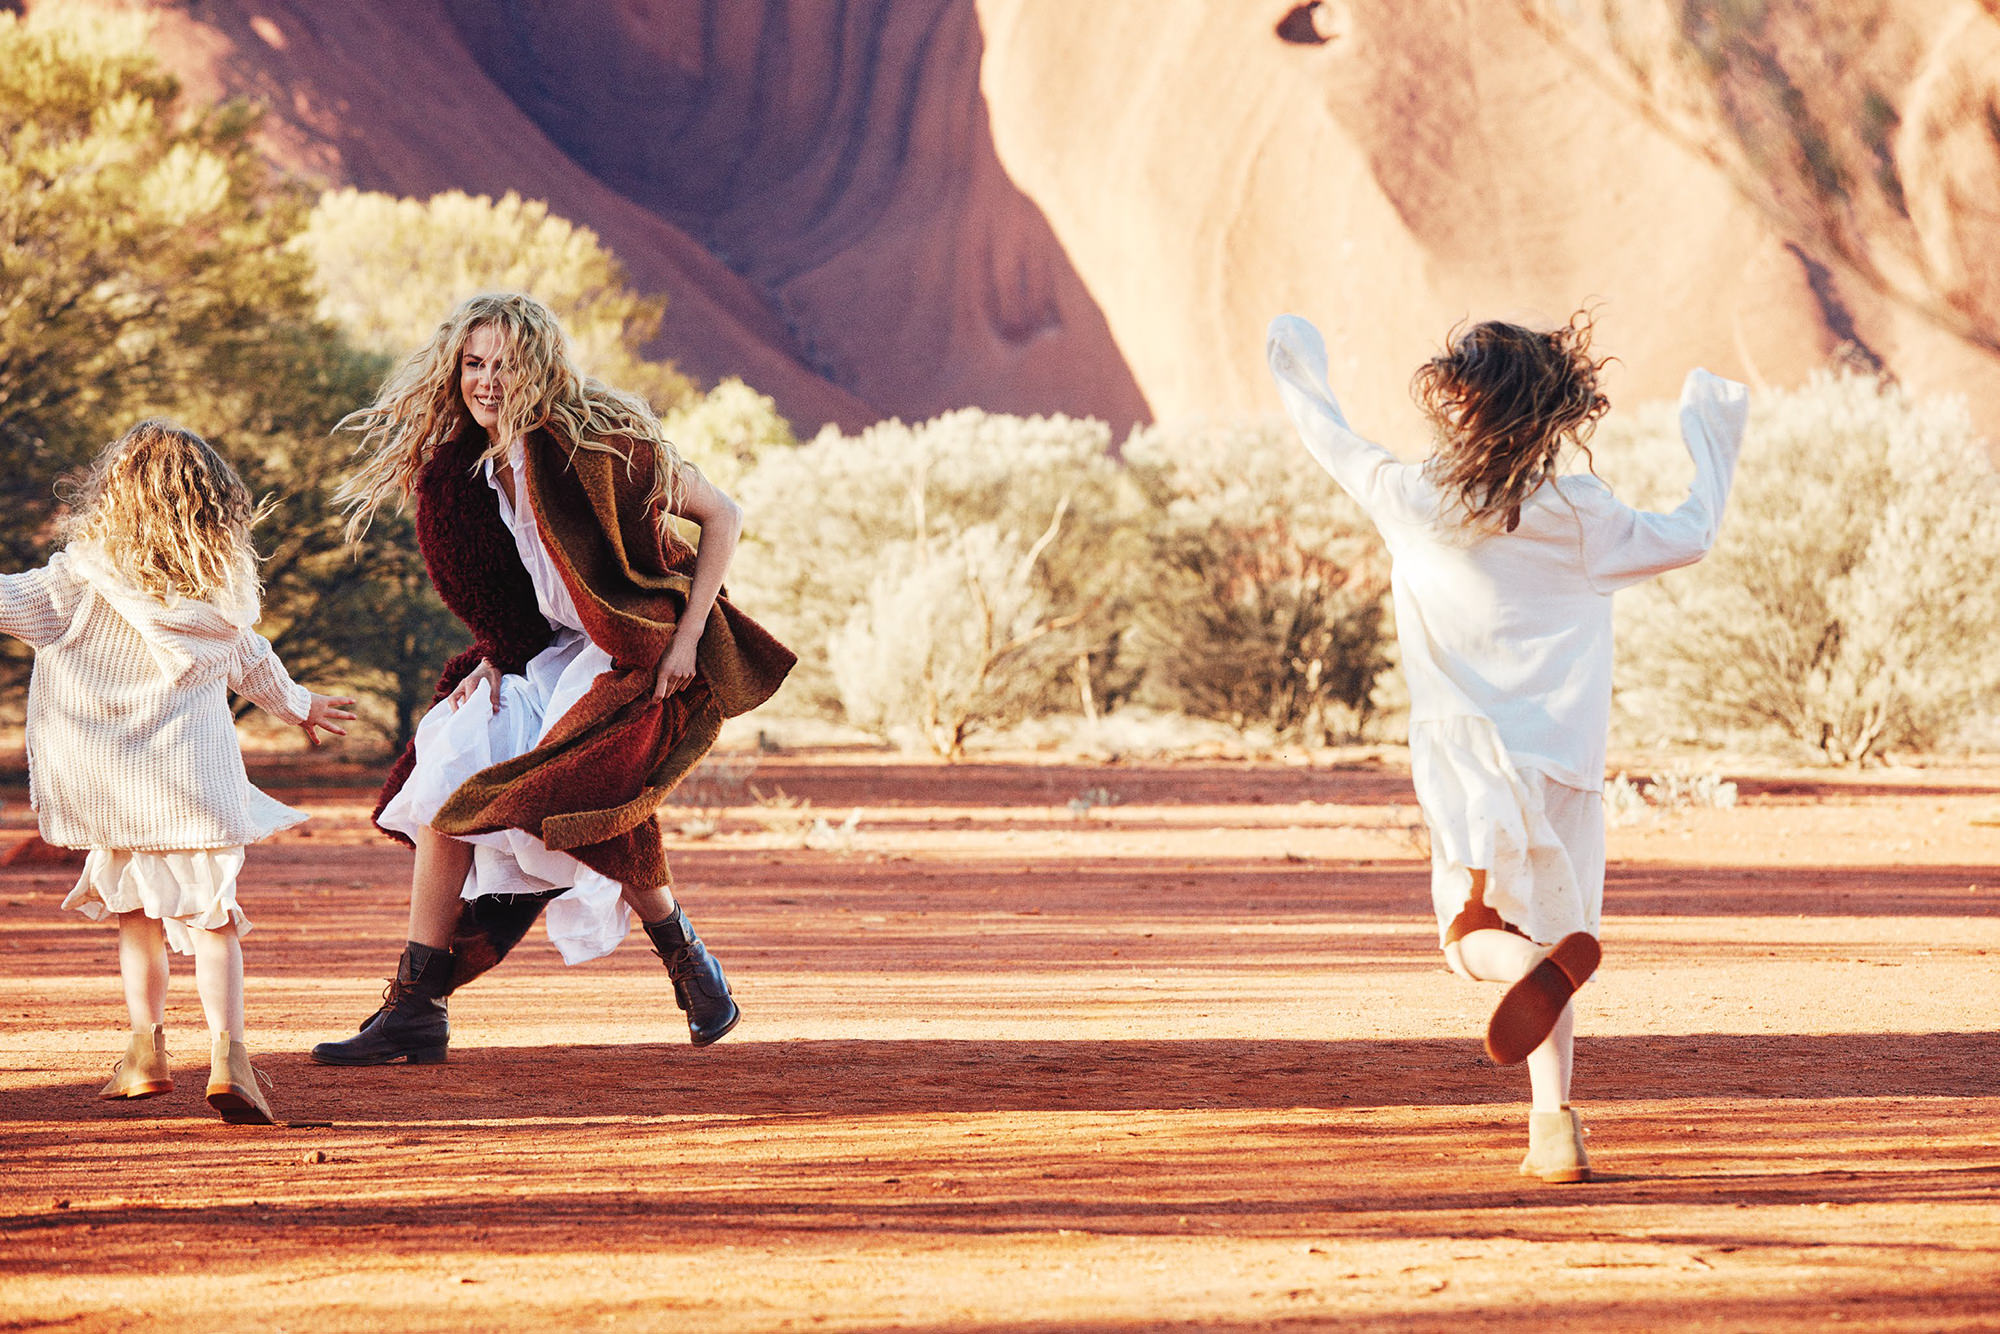 nicole-kidman-by-will-davidson-for-vogue-australia-september-2015-1